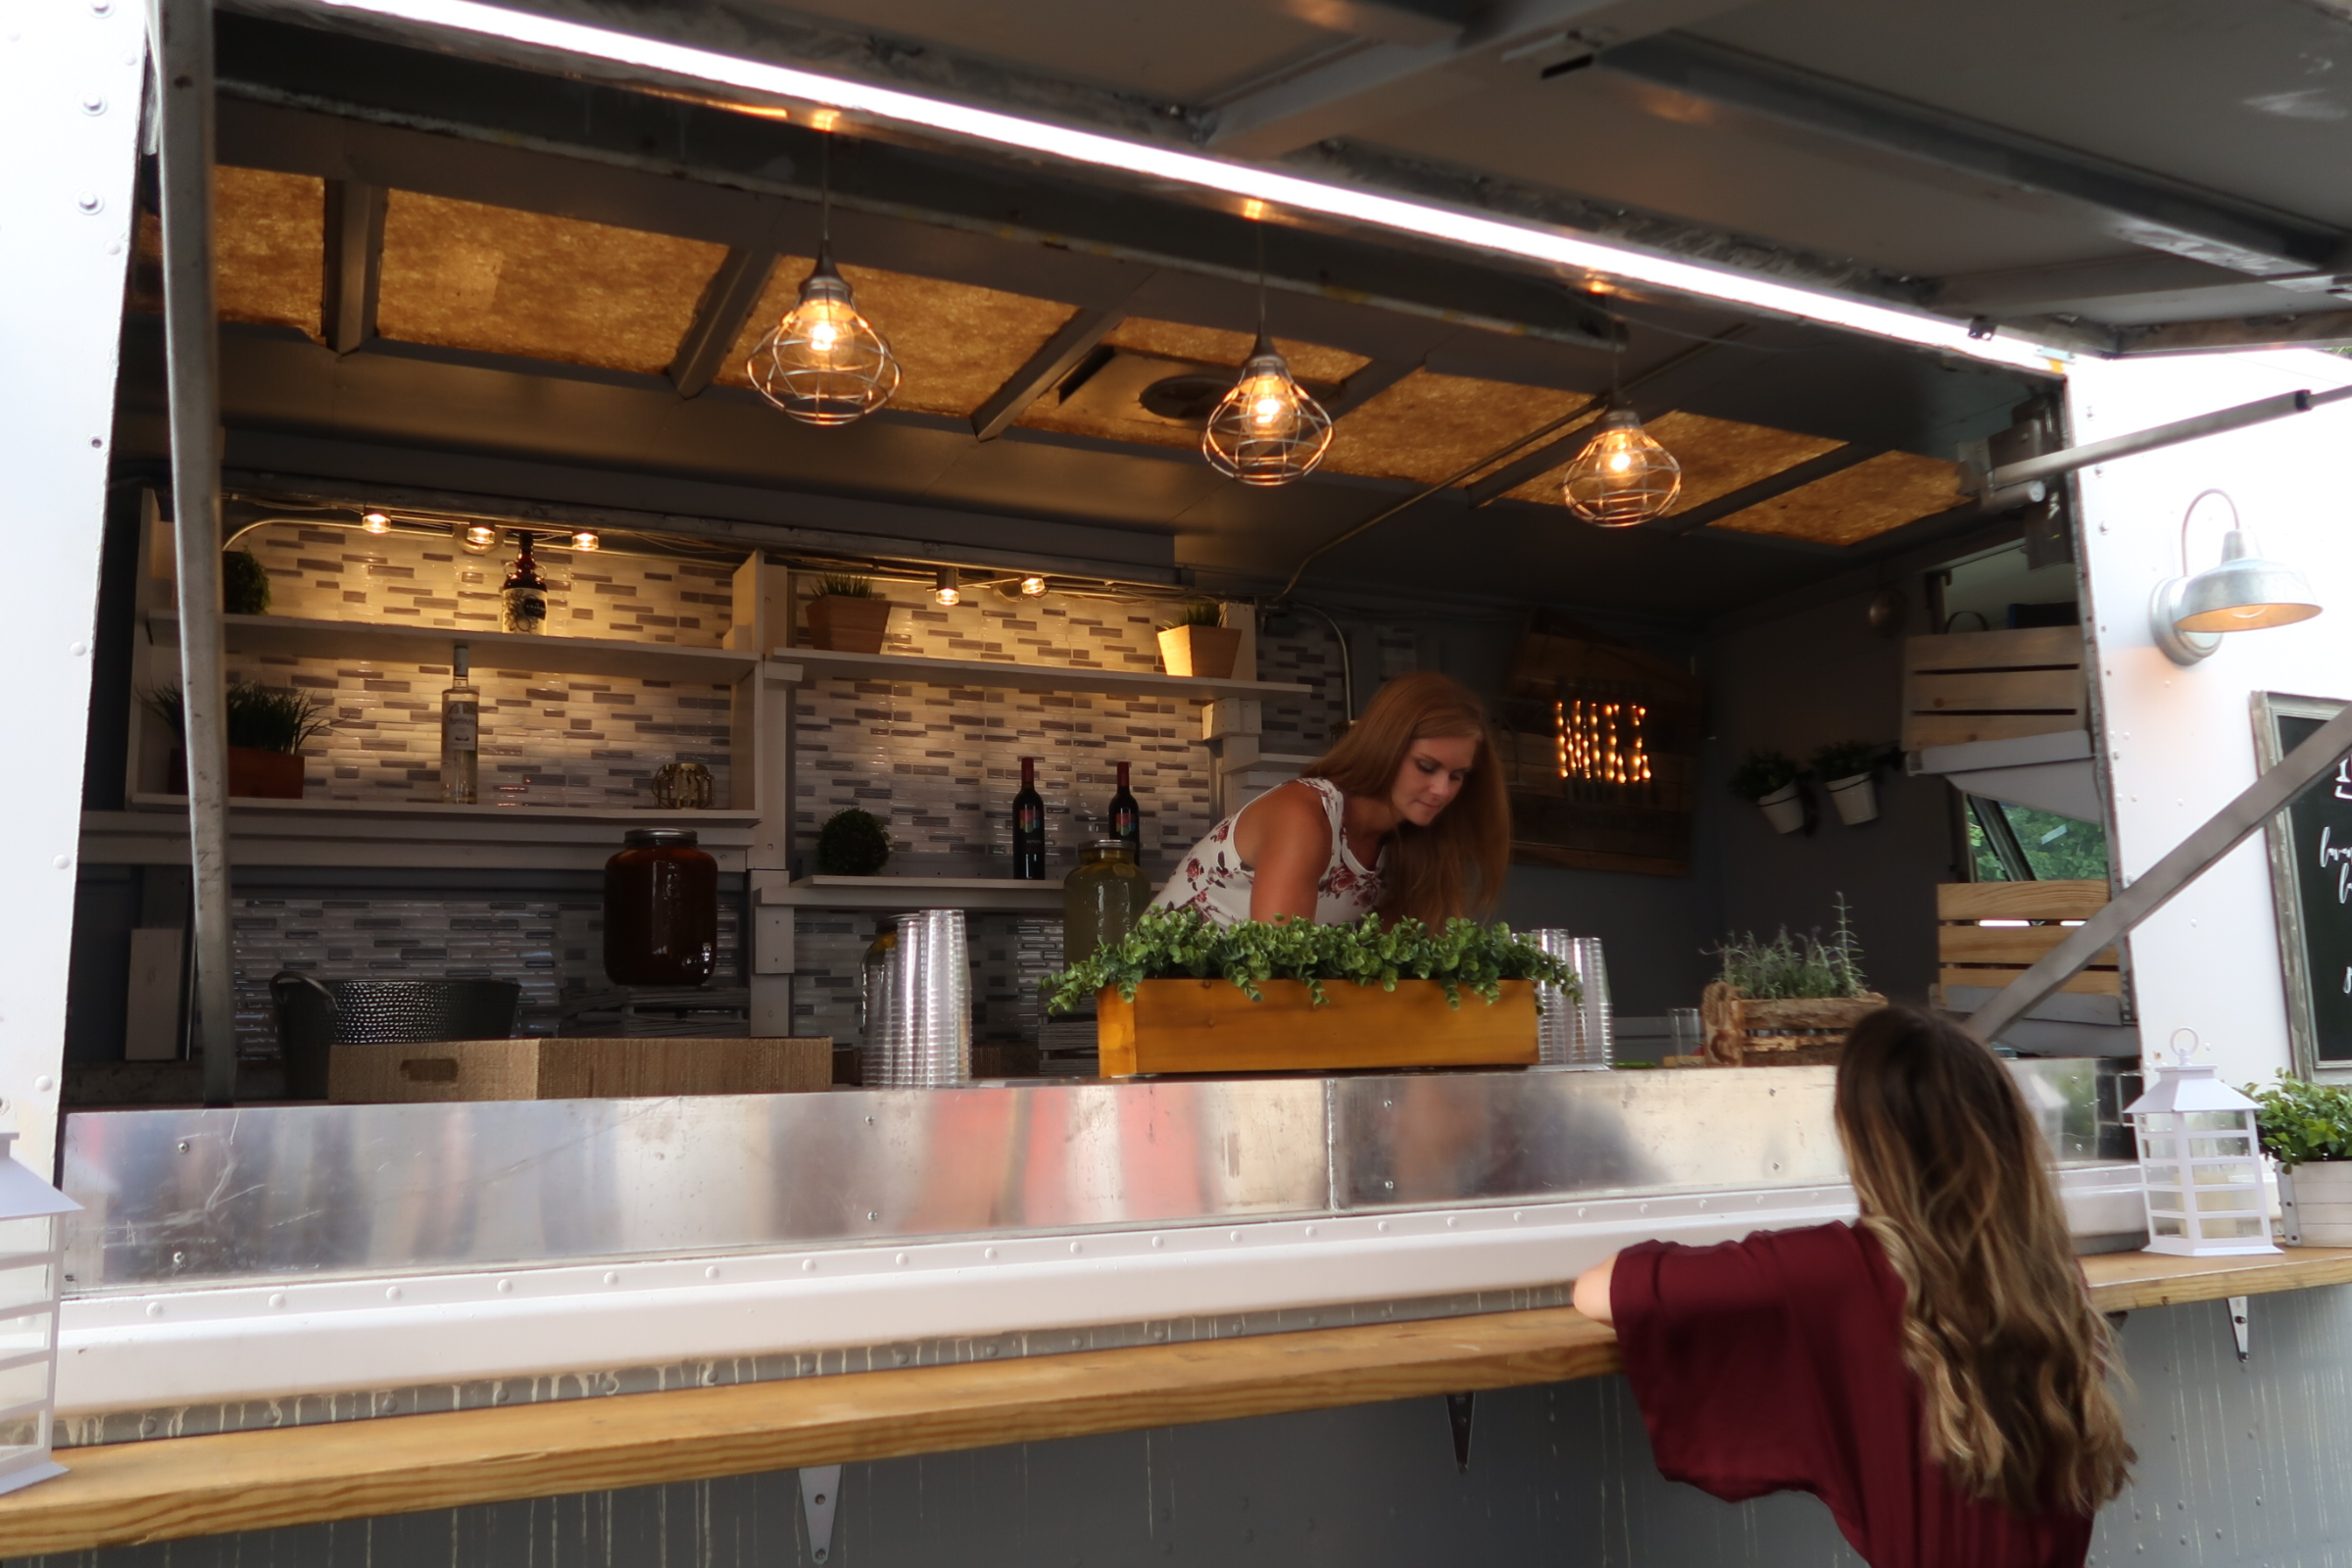 I was invited to participate in the  Handpicked Bridal Event  - it was such a fun evening at the  HiHo Brewery  in Cuyahoga Falls and I had the opportunity to meet with so many amazing vendors, including Callie from  Bartenza  - her bar truck is so charming - can you believe she transformed this herself?!